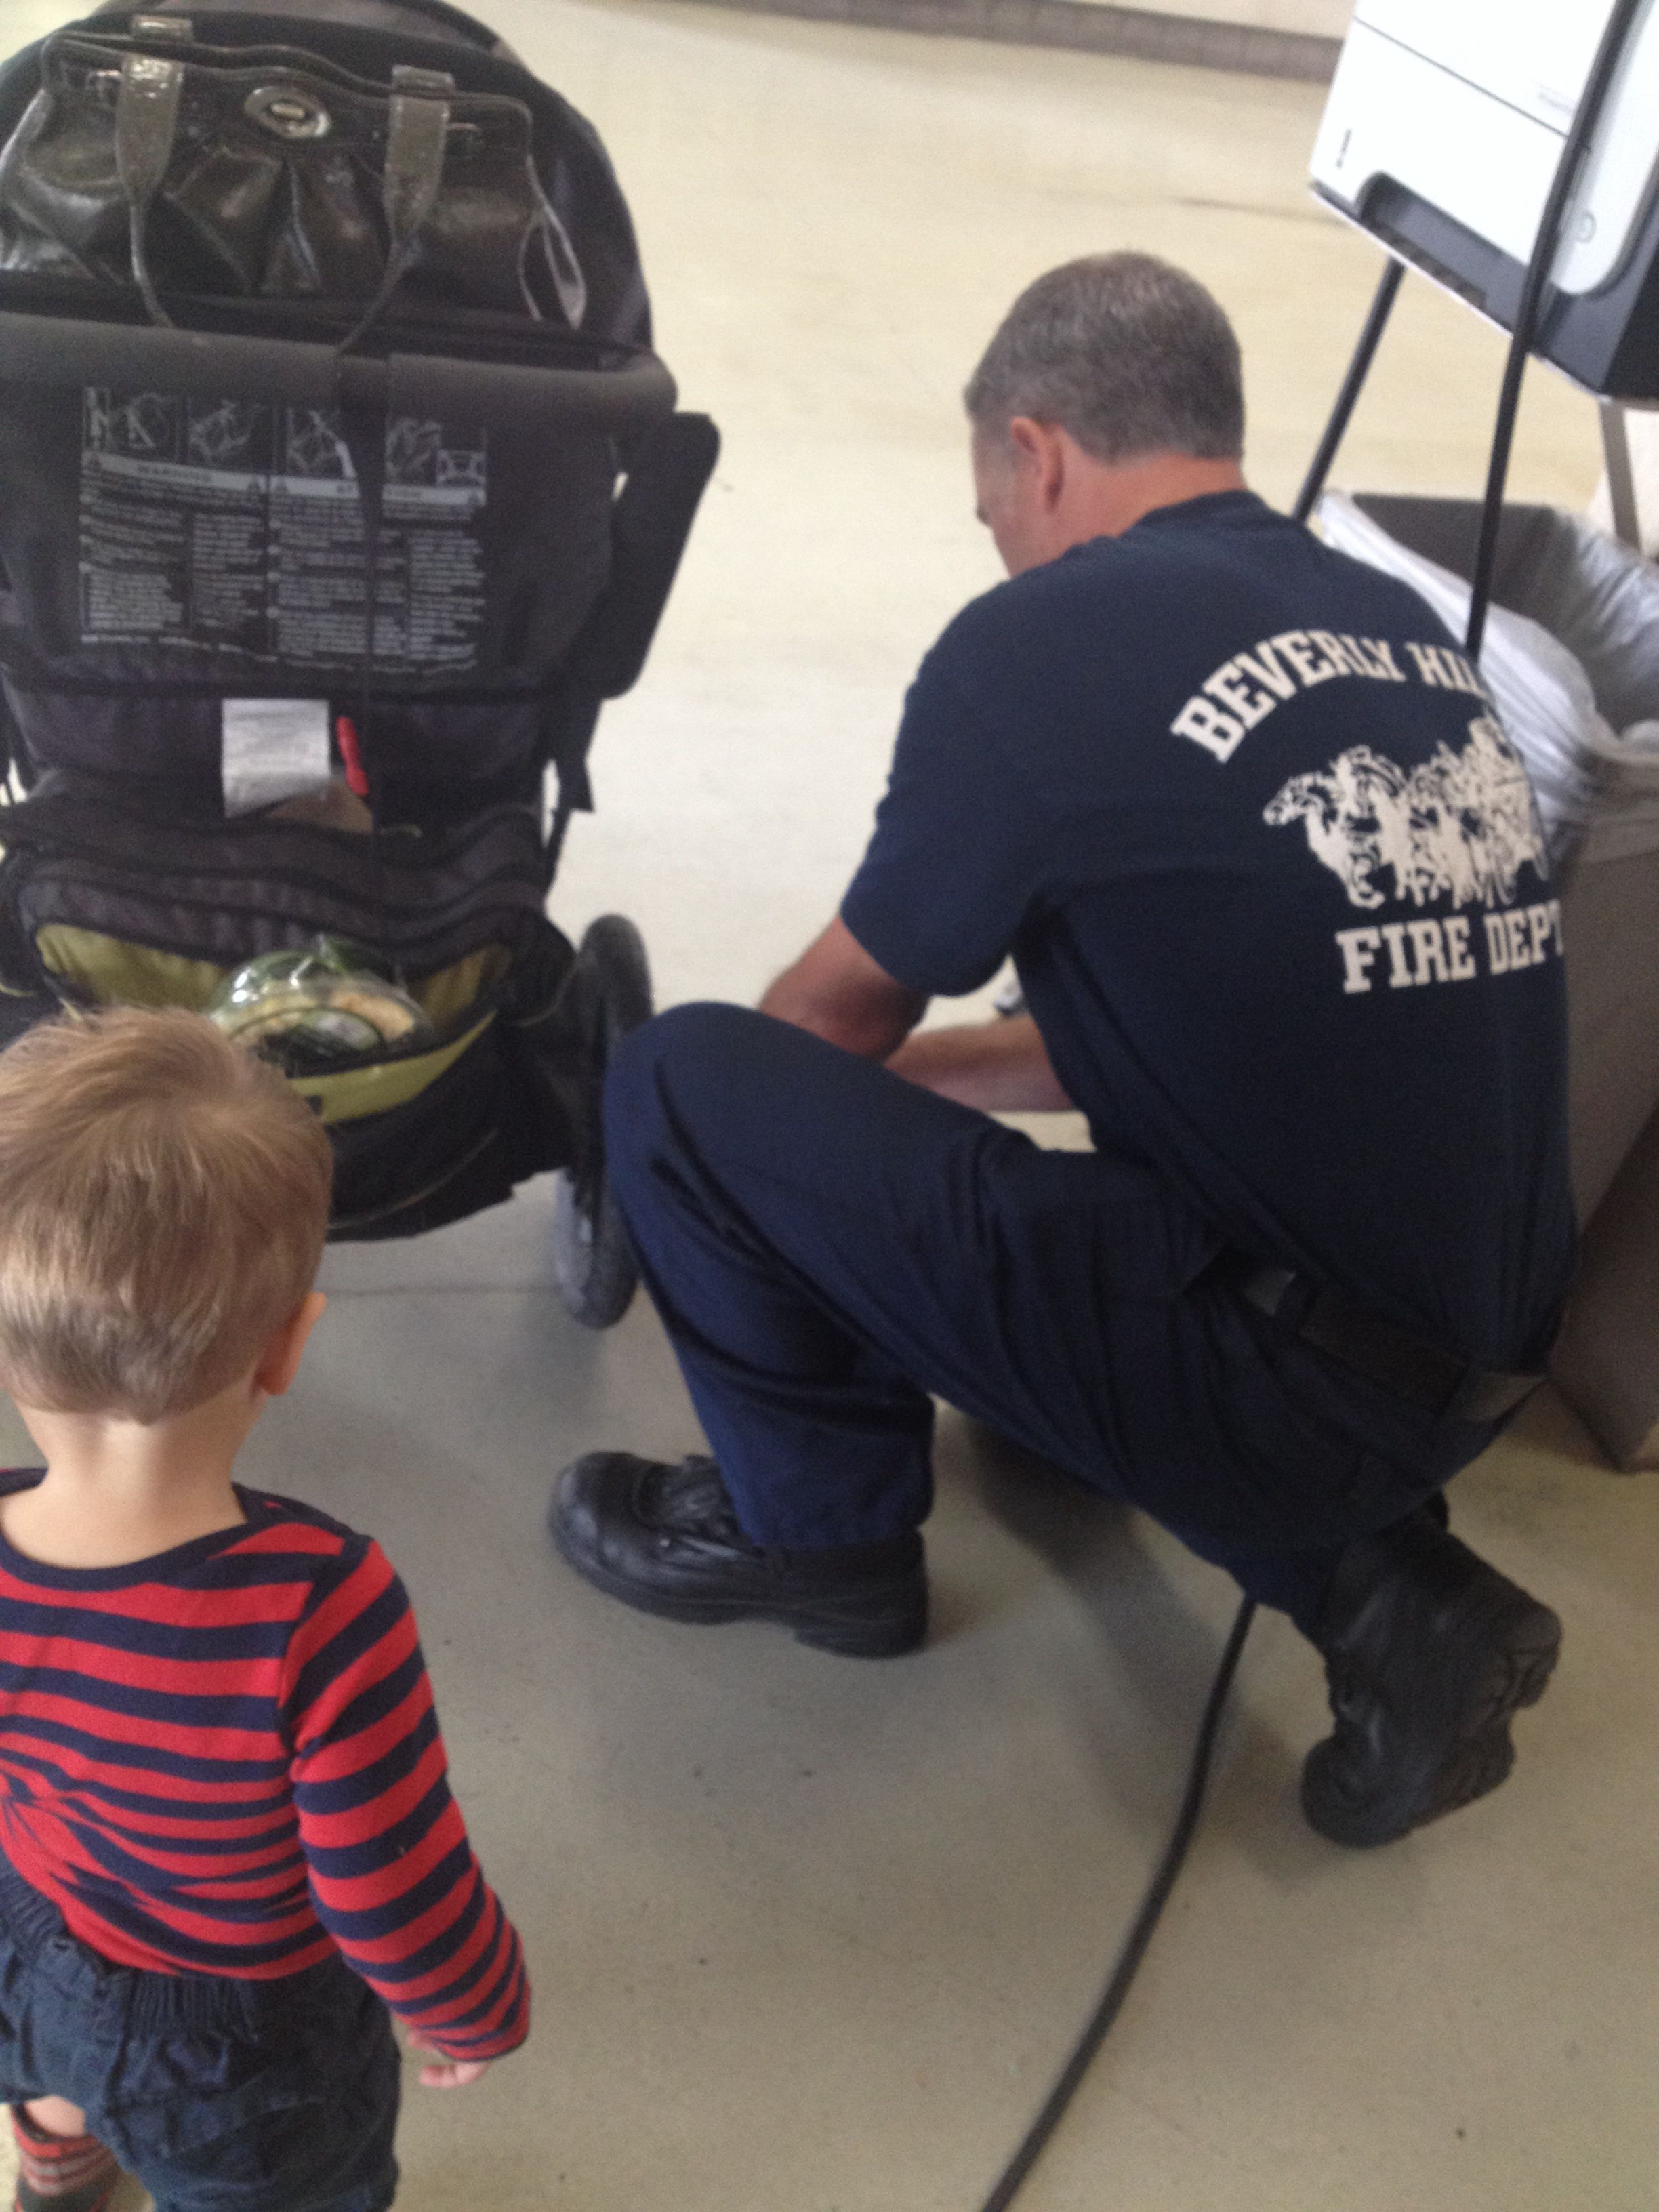 Did you know... Show up for a spontaneous tour at your local fire station, and they'll offer to fill up your stroller tires?? So sweet!! I need to go back with homemade cookies...